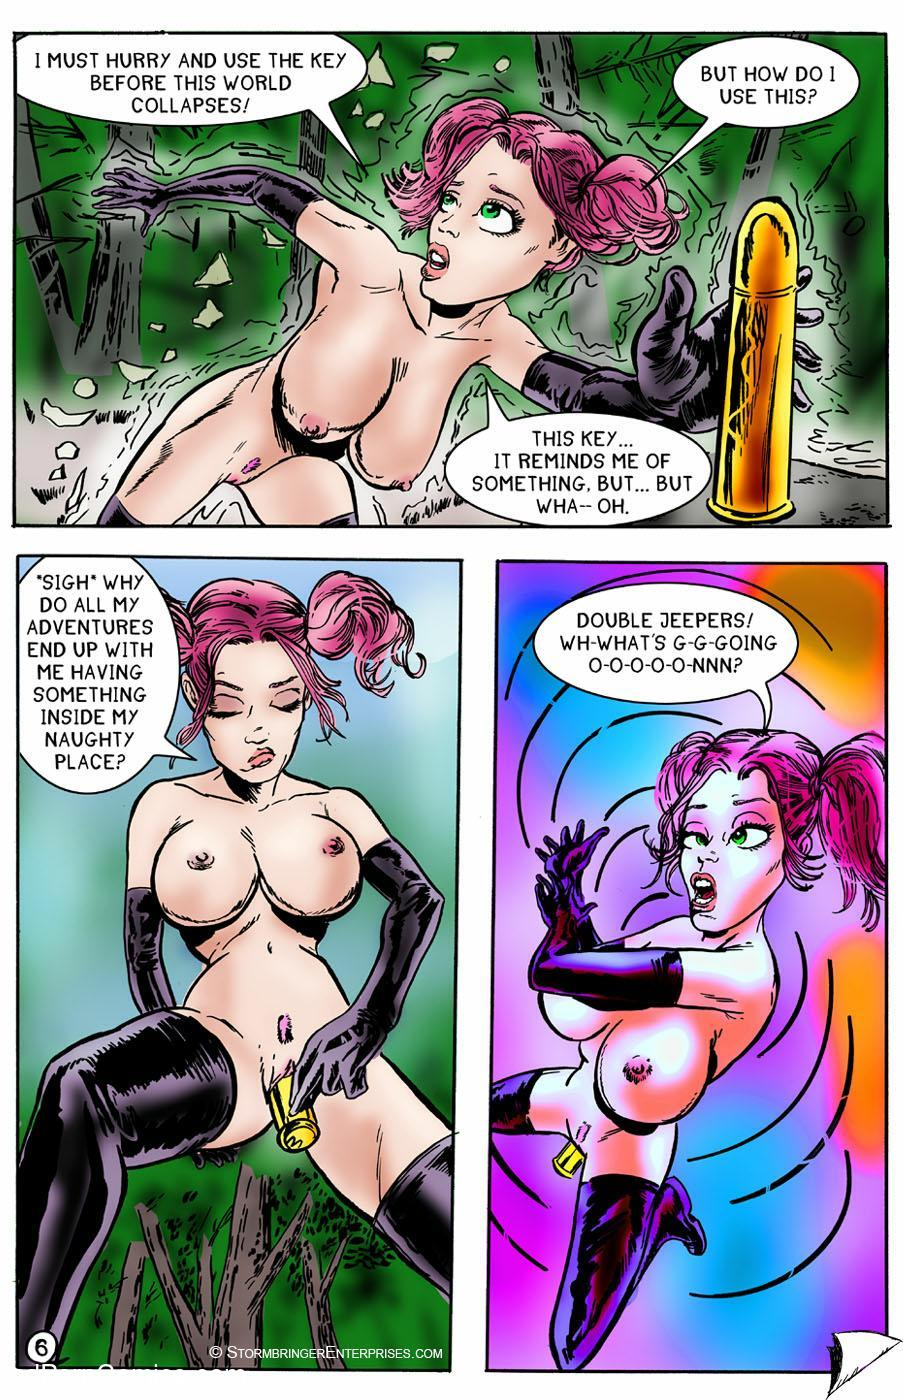 Erotic Adventures of Candice 01-1873 free sex comic